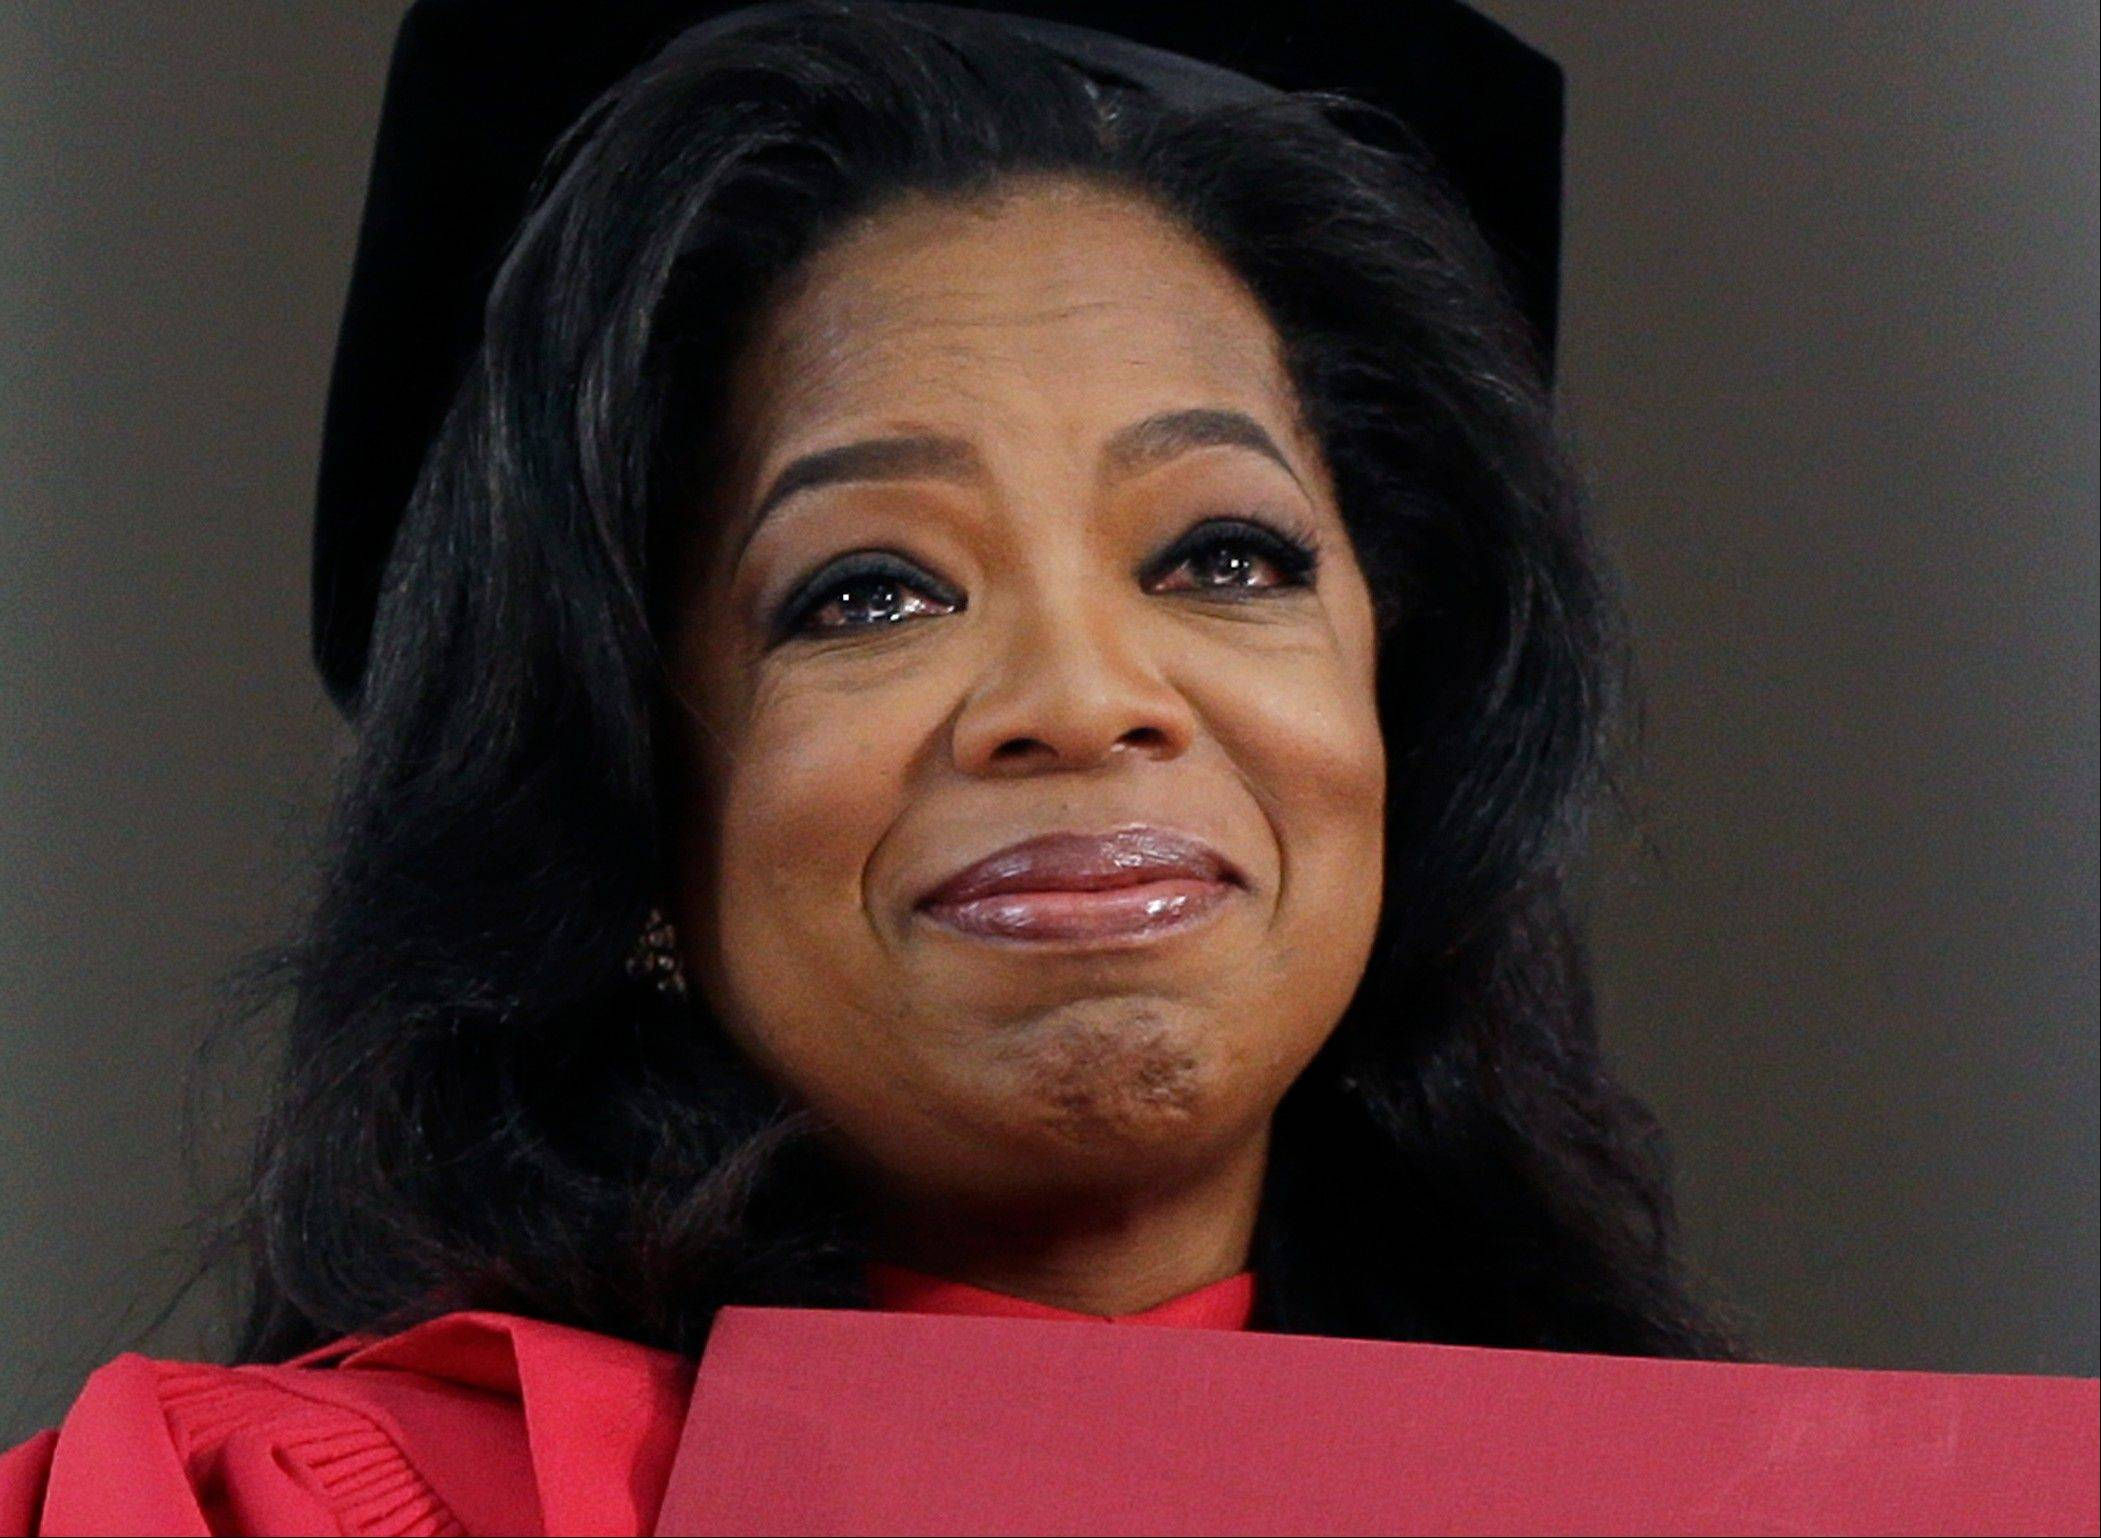 Oprah Winfrey tearfully accepted an honorary Doctor of Laws degree from Harvard University on Thursday.